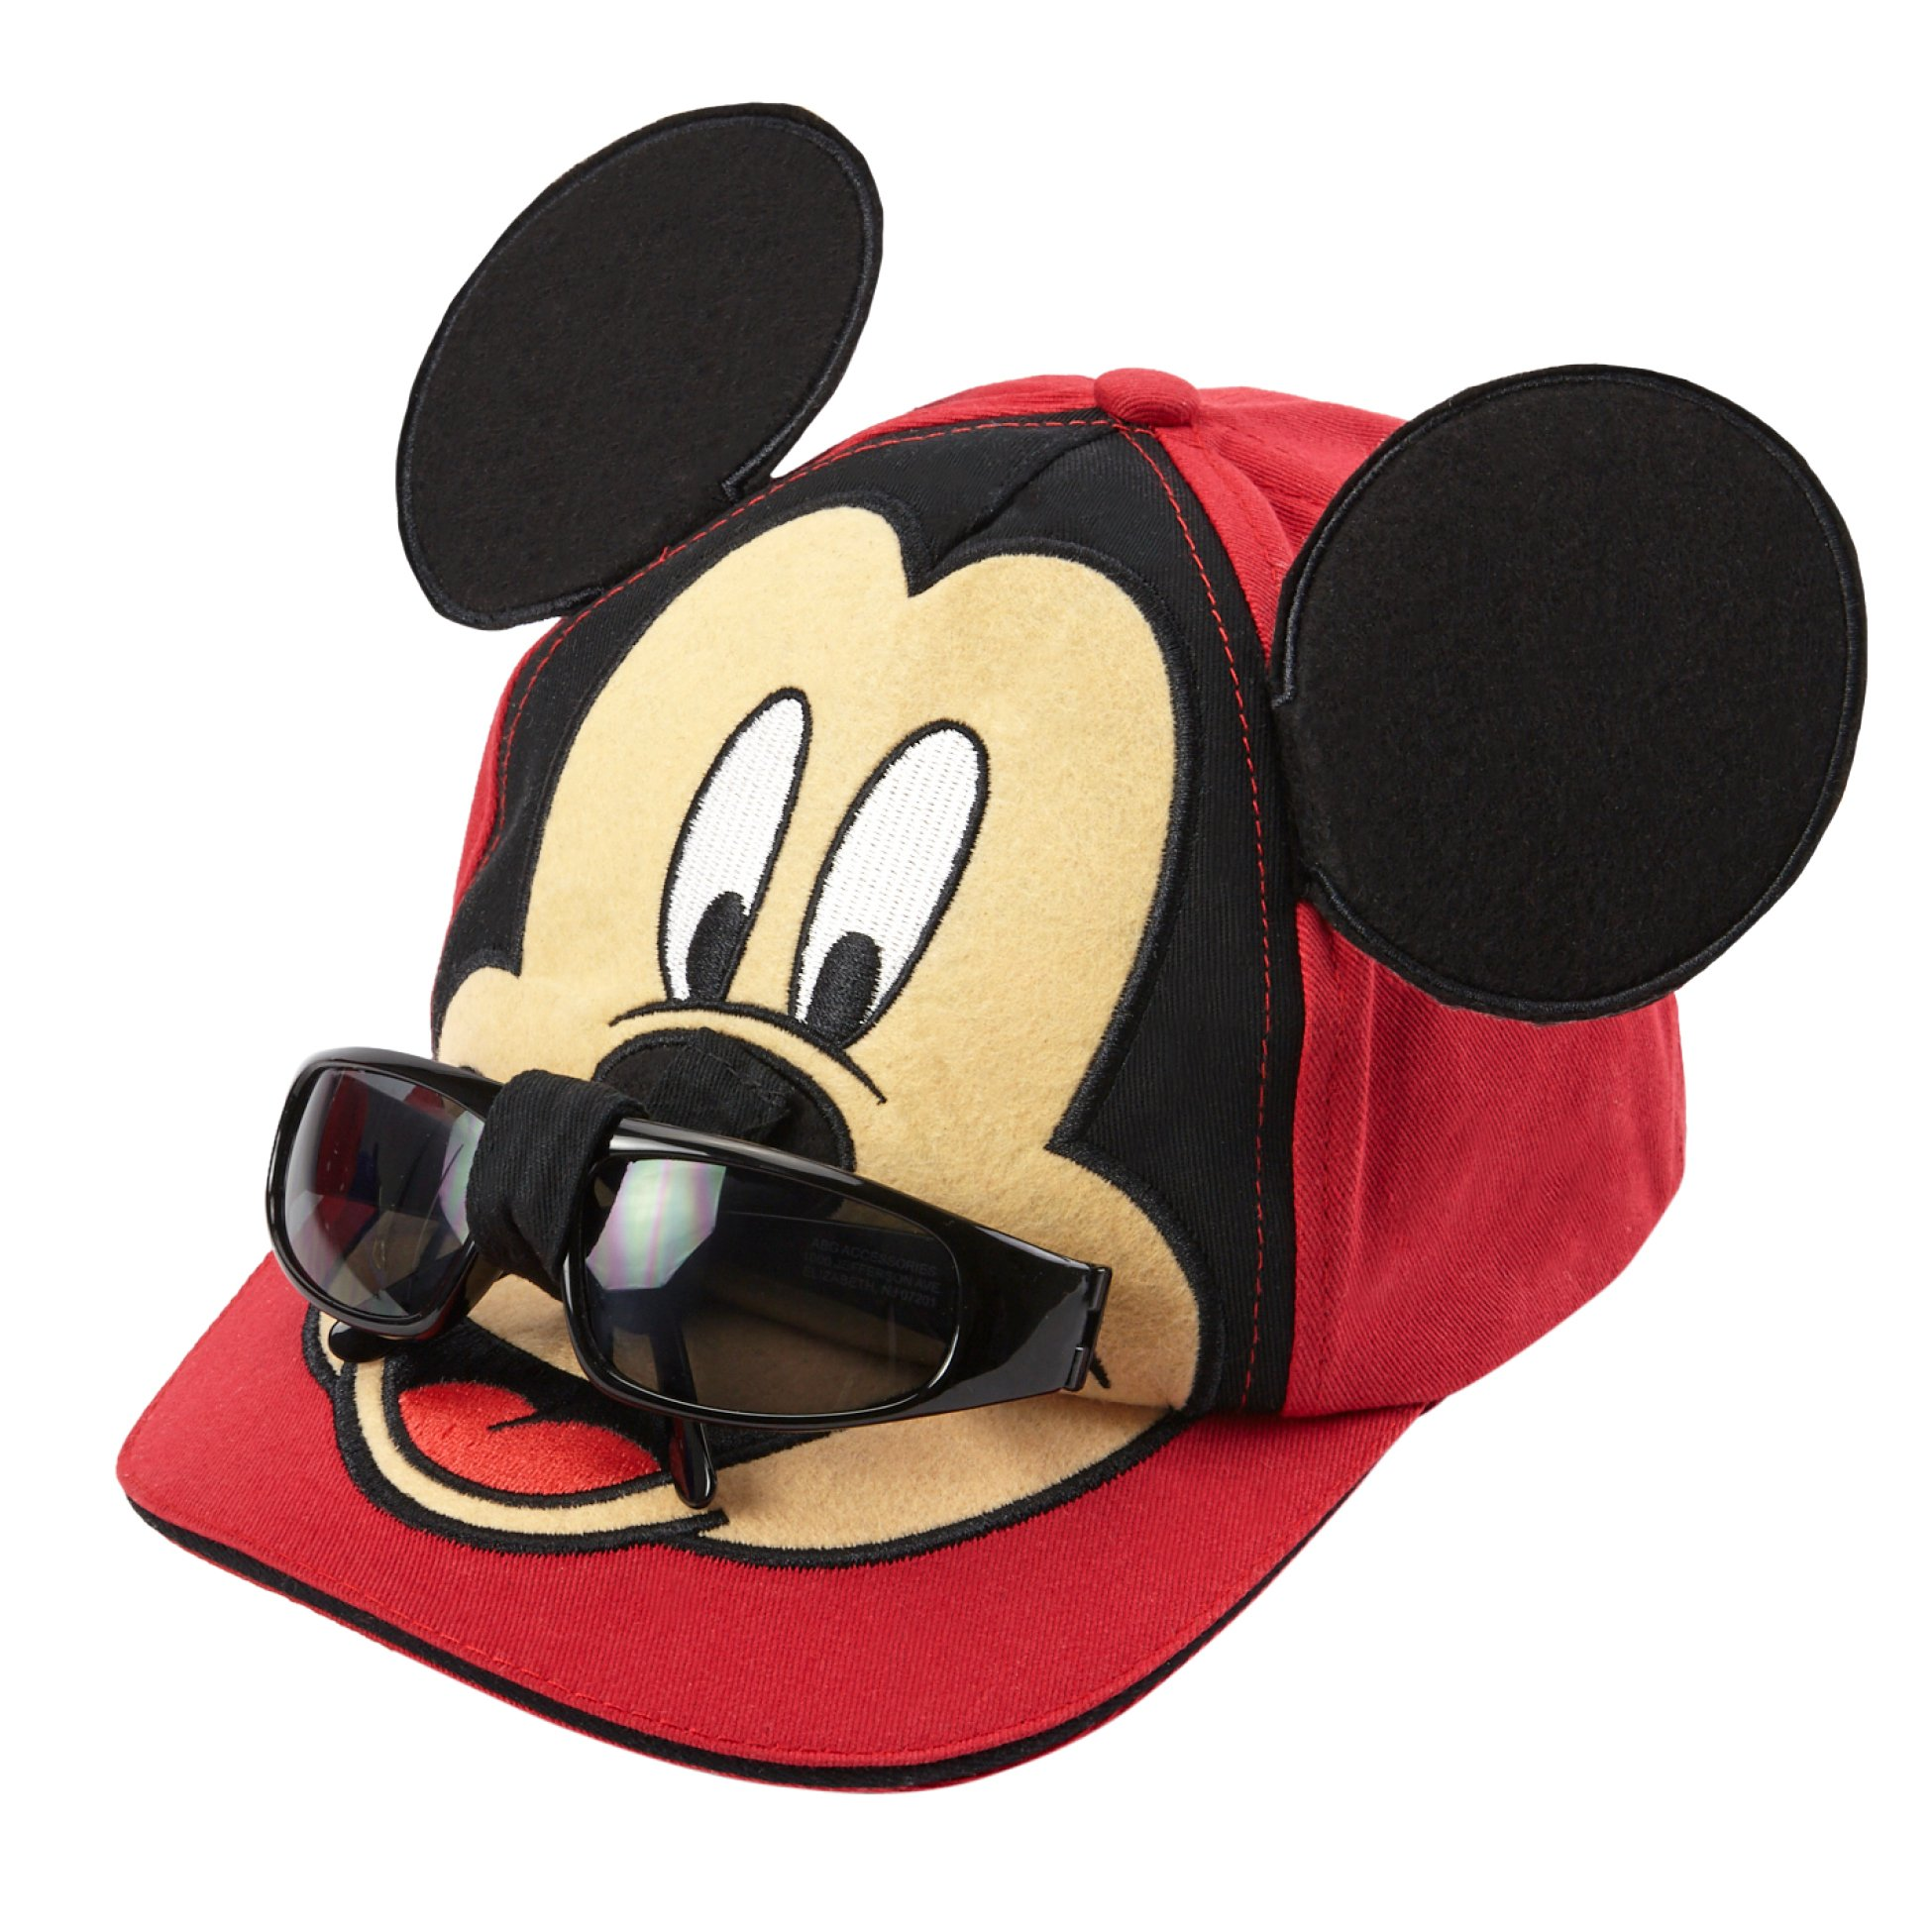 Disney Boys Mickey Mouse Cotton Baseball Cap - 100% Cotton (Red with Removable Sunglasses)